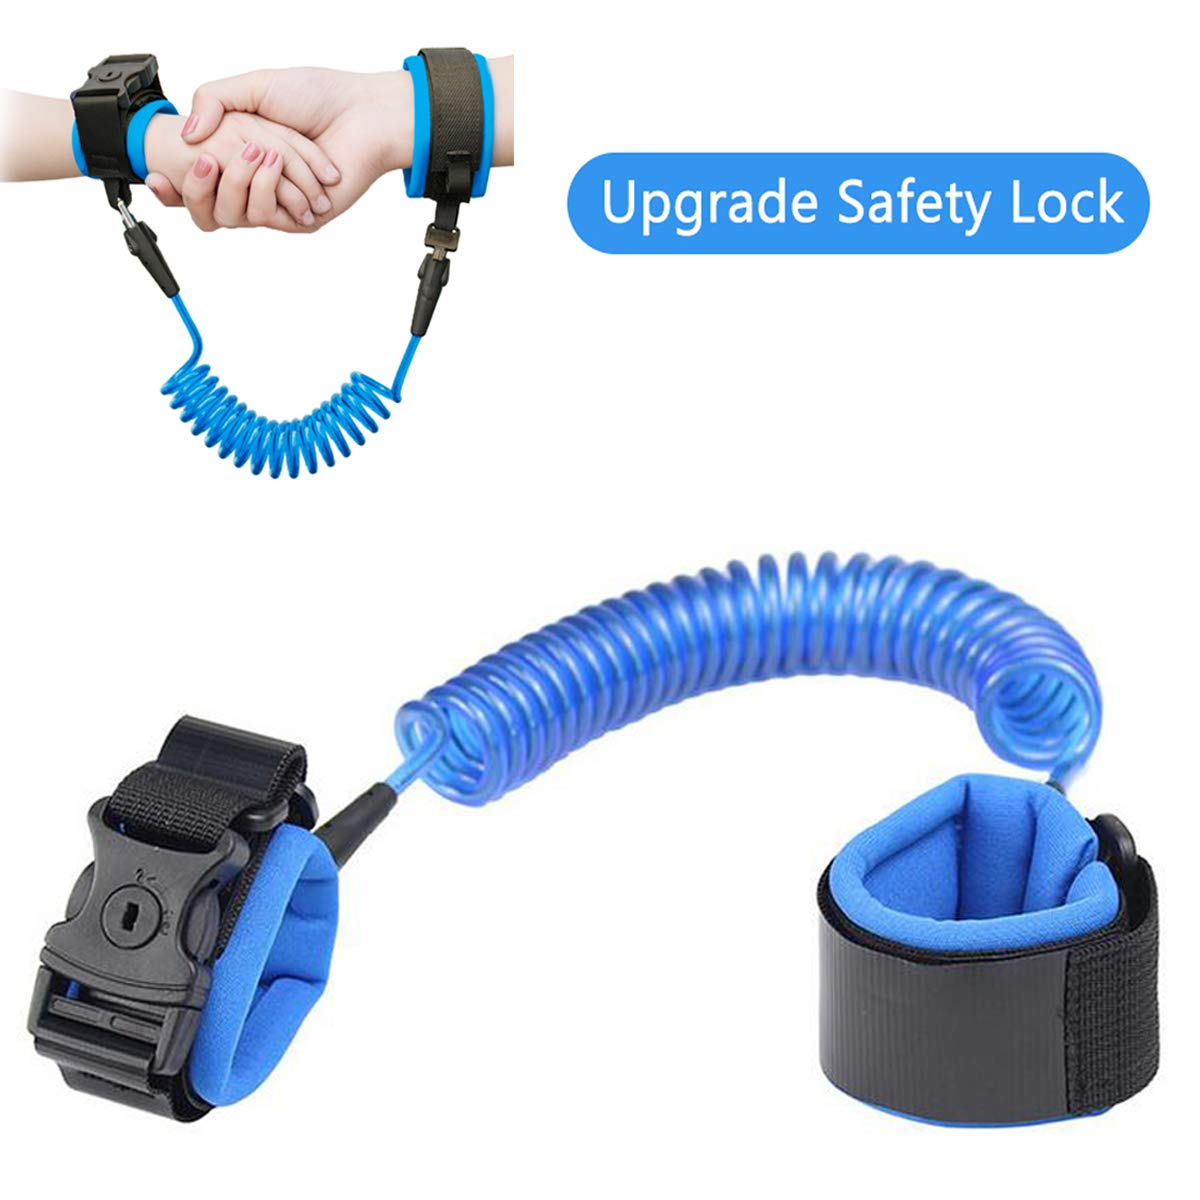 Upgrade Lock Version Safety Toddler Harness Leashes Child Safety Wristband Wrist Leash for Kids Toddlers 6.56ft Pink Anti Lost Wrist Link